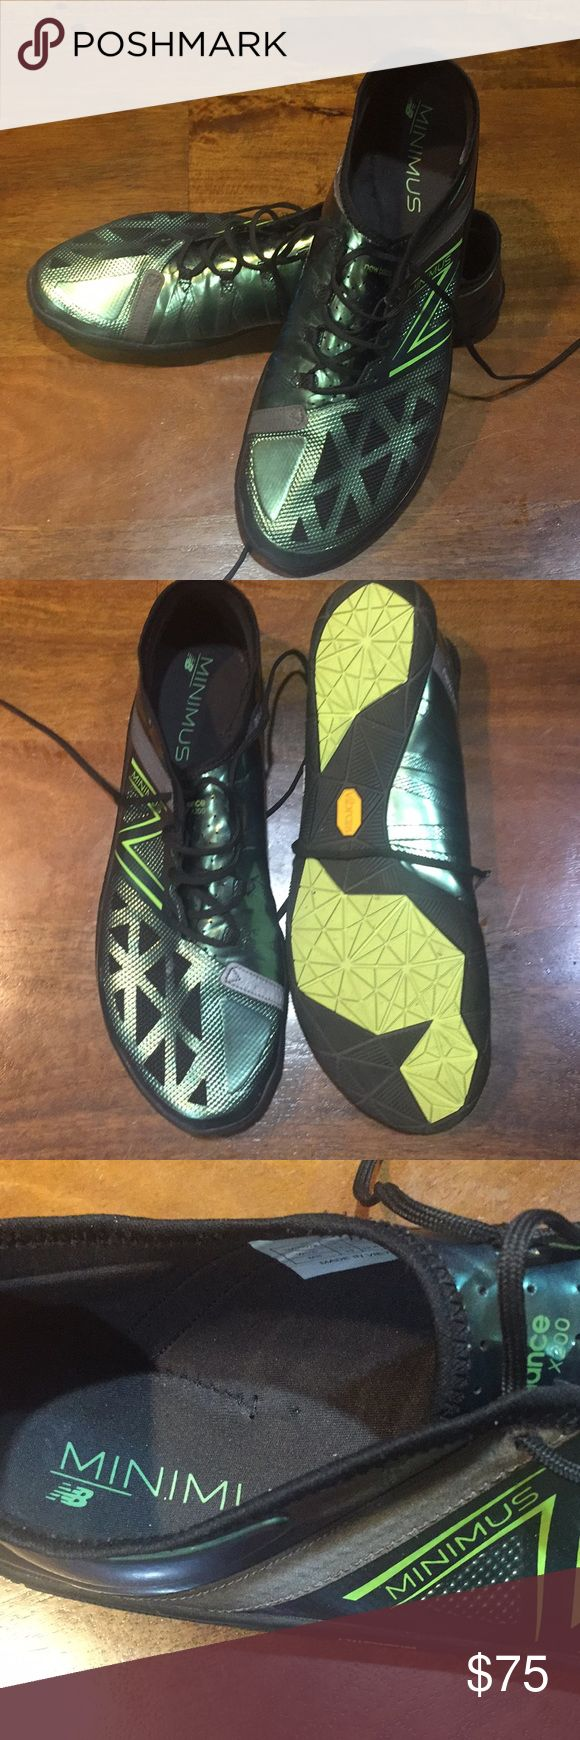 New Balance Minimus Shoes Like new...only worn a couple times. Minimalist running shoes, also great for cross fit or other cross training. New Balance Shoes Sneakers